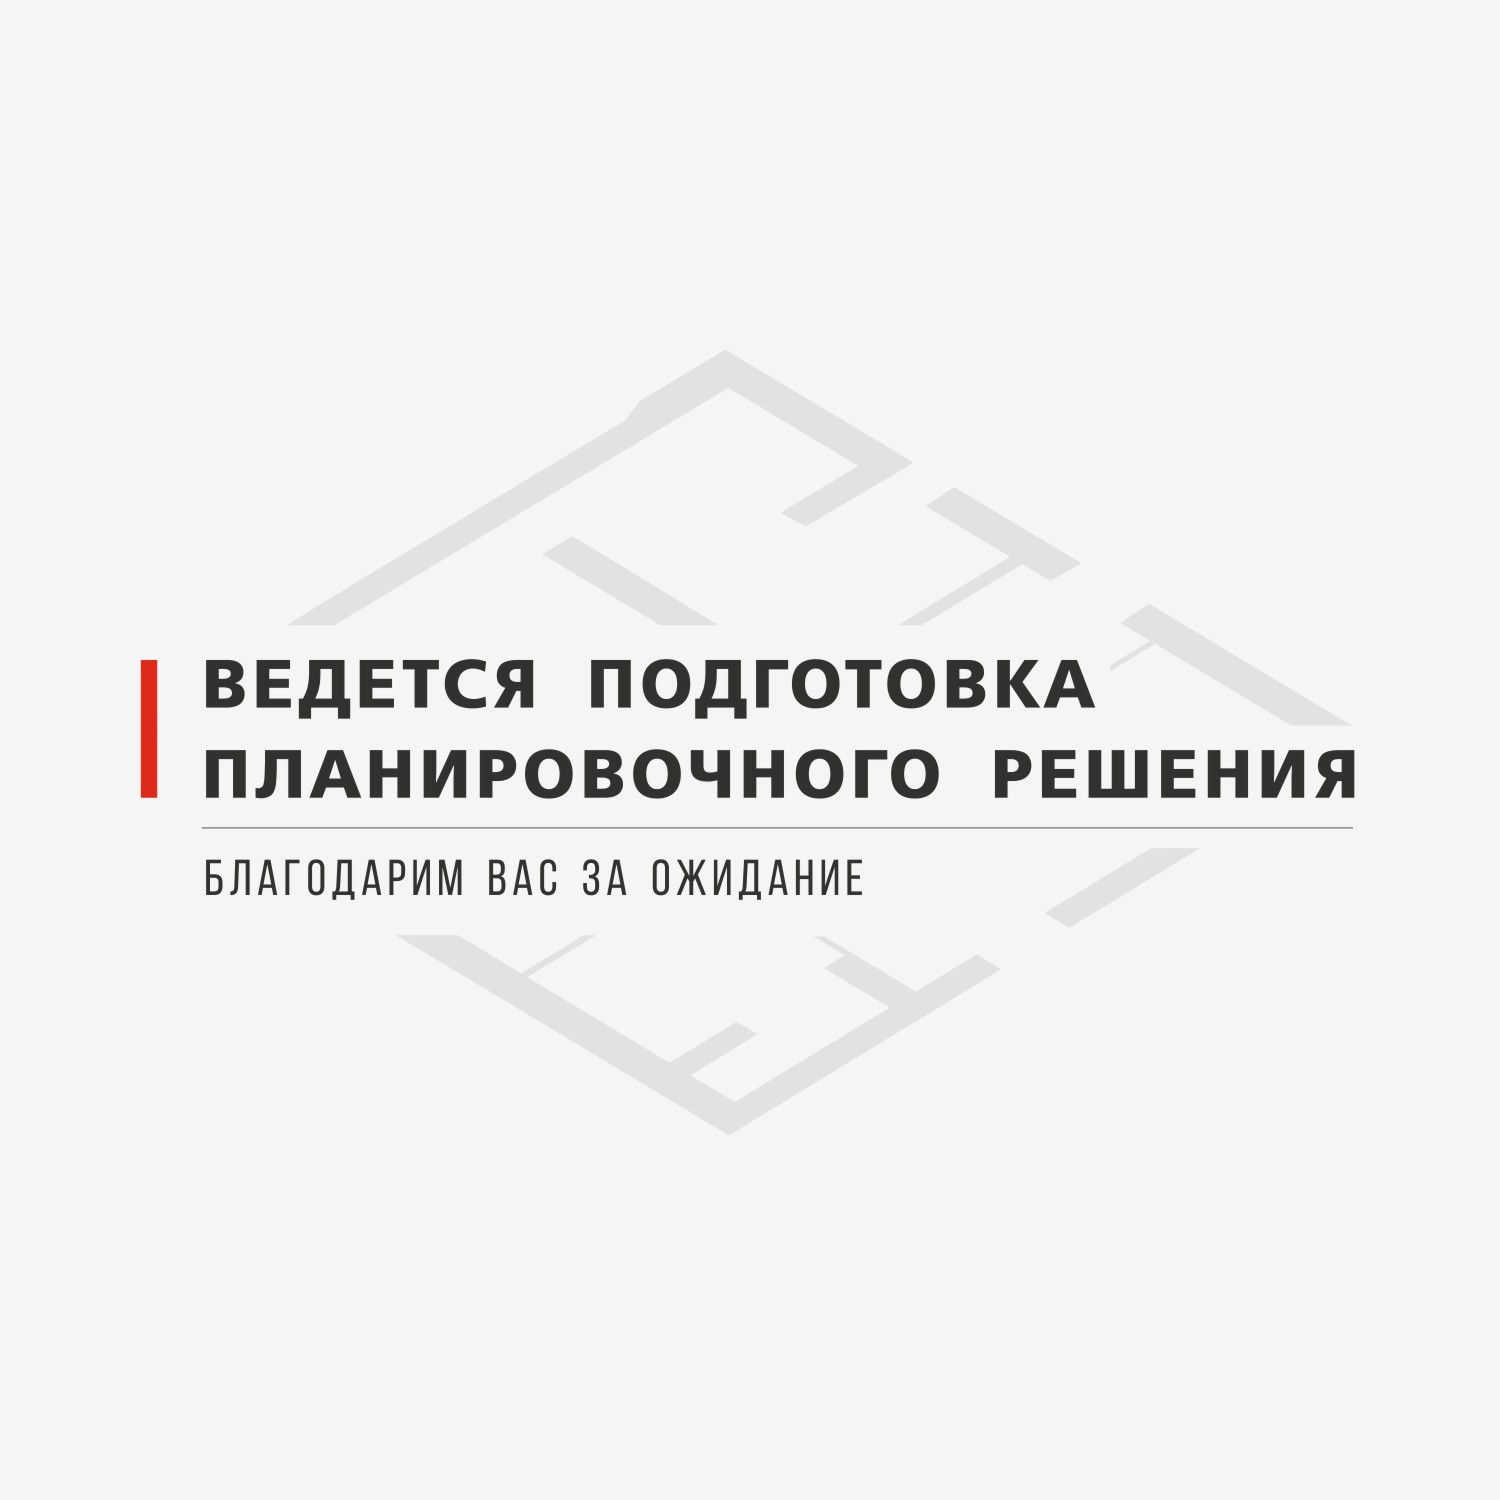 Купить однокомнатную квартиру в новостройке г Москва, ул Лобачевского, д 120 - World Real Estate Service «PUSH-KA», объявление №189273